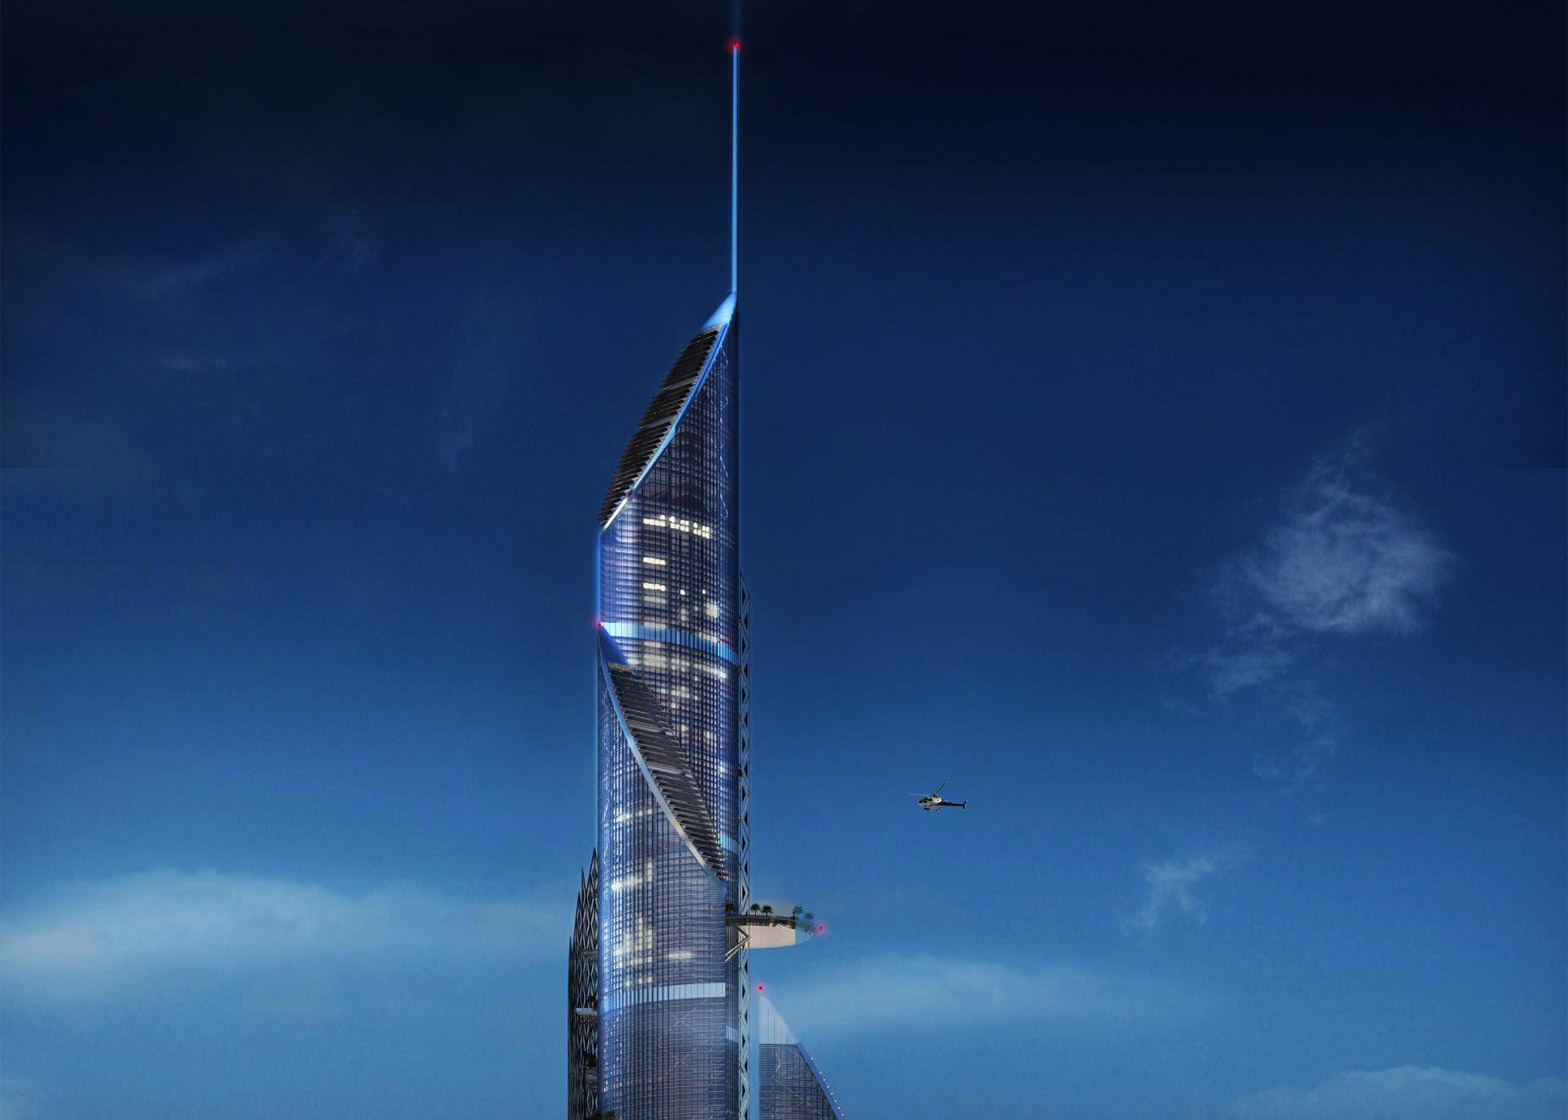 Architecture and Design world's tallest building iraq Architecture and DesignArchitecture and Design: World's tallest building in Iraq's BasraArchitecture and Design worlds tallest building iraq